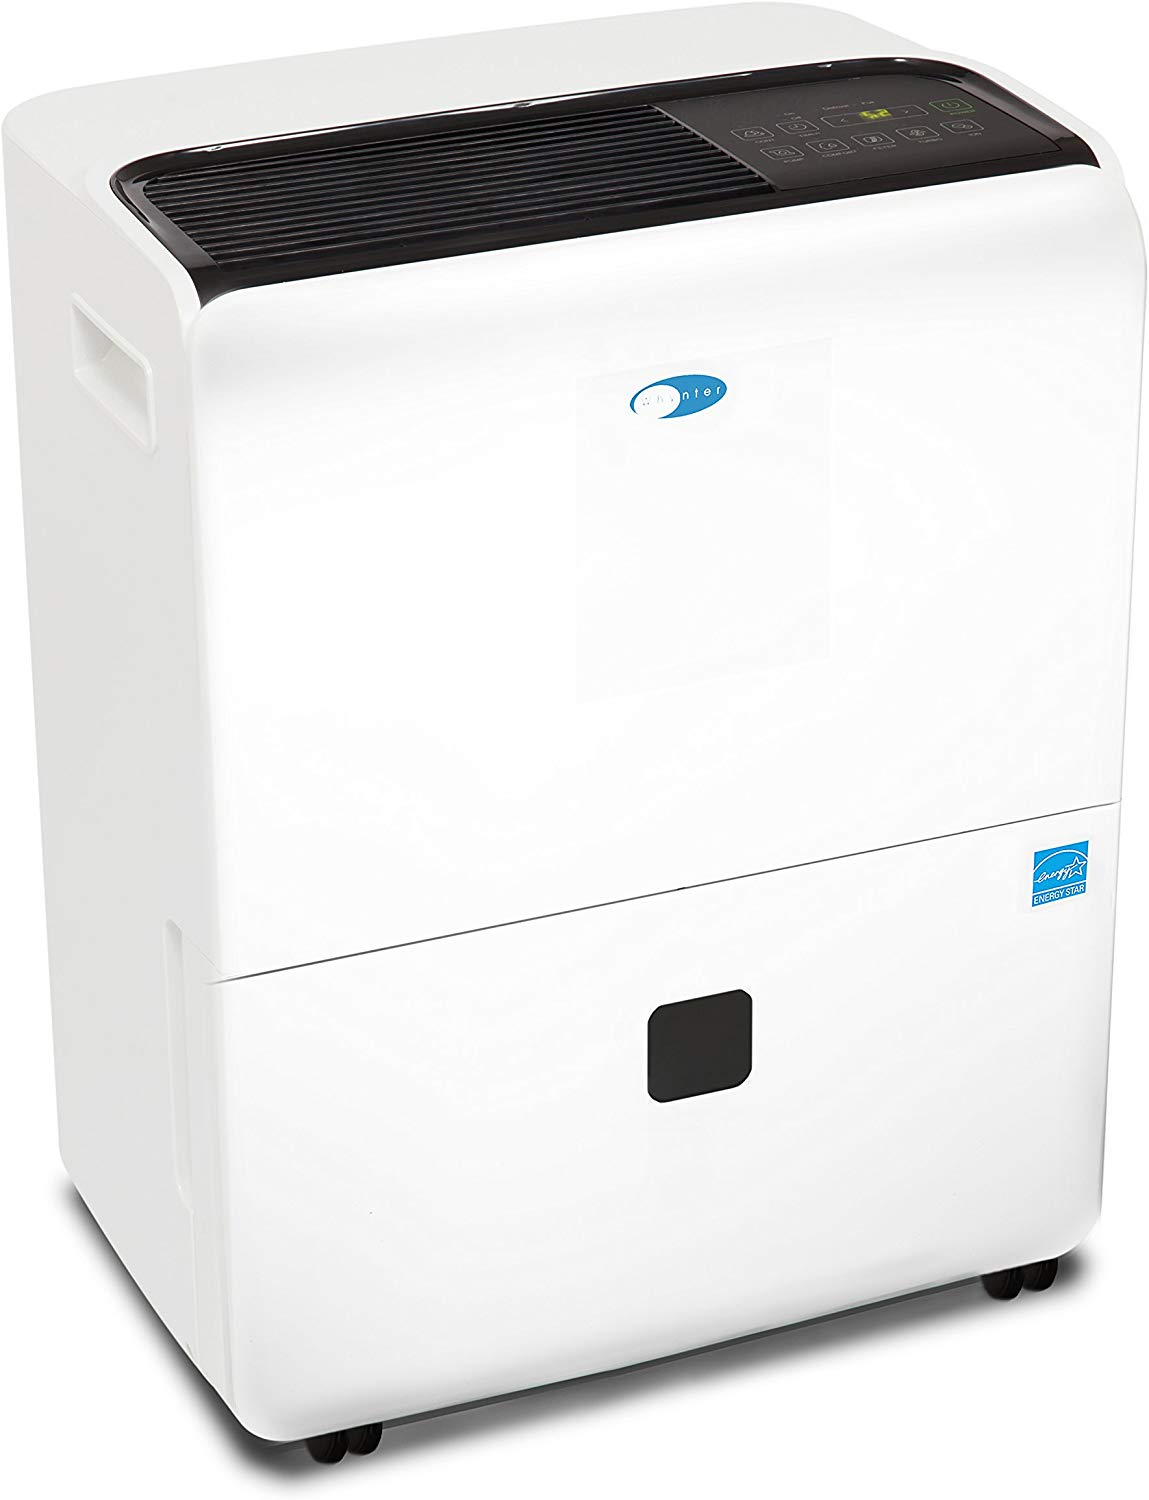 commercial dehumidifier: short on cash? This might be your best budget pick!